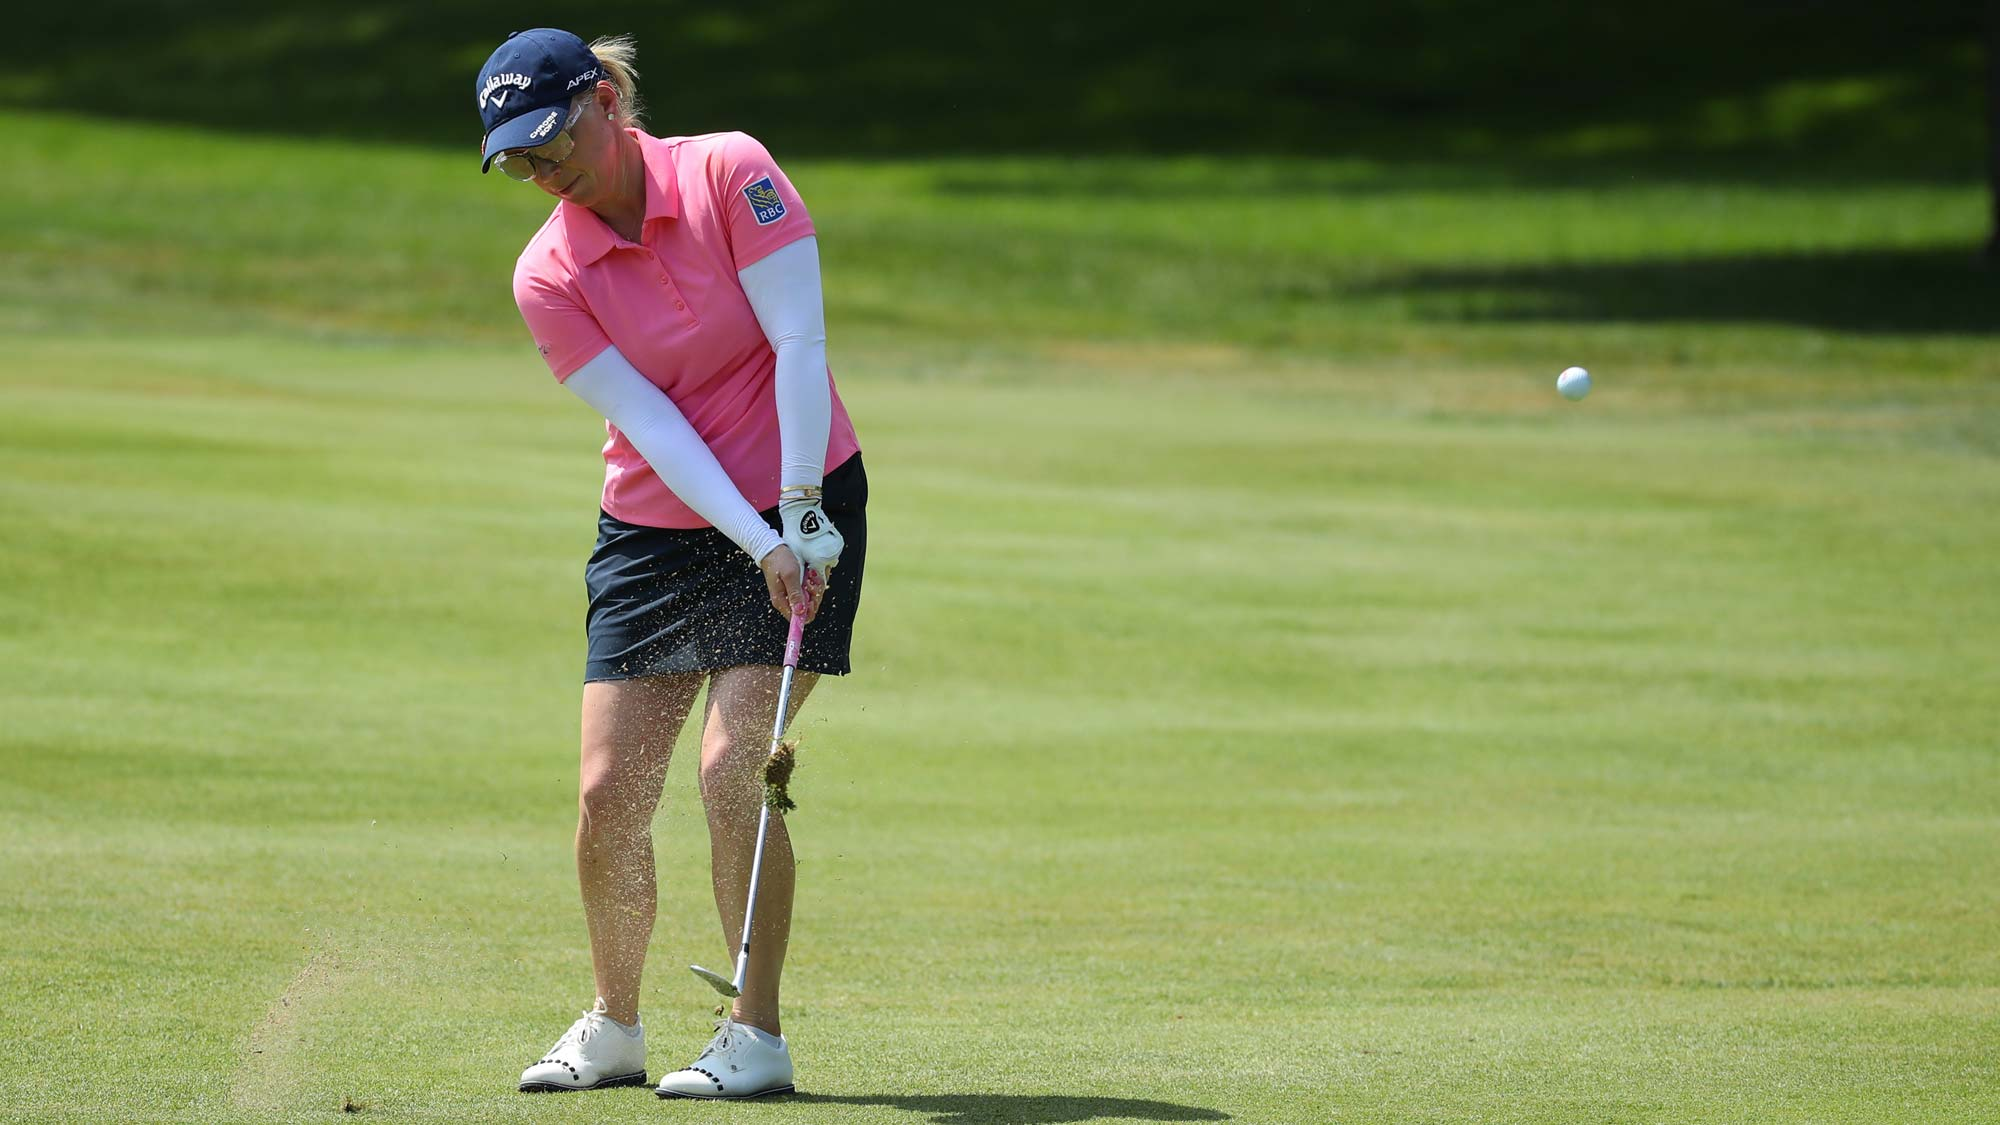 Morgan Pressel chips to the sixth green during round three of the Dow Great Lakes Bay Invitational